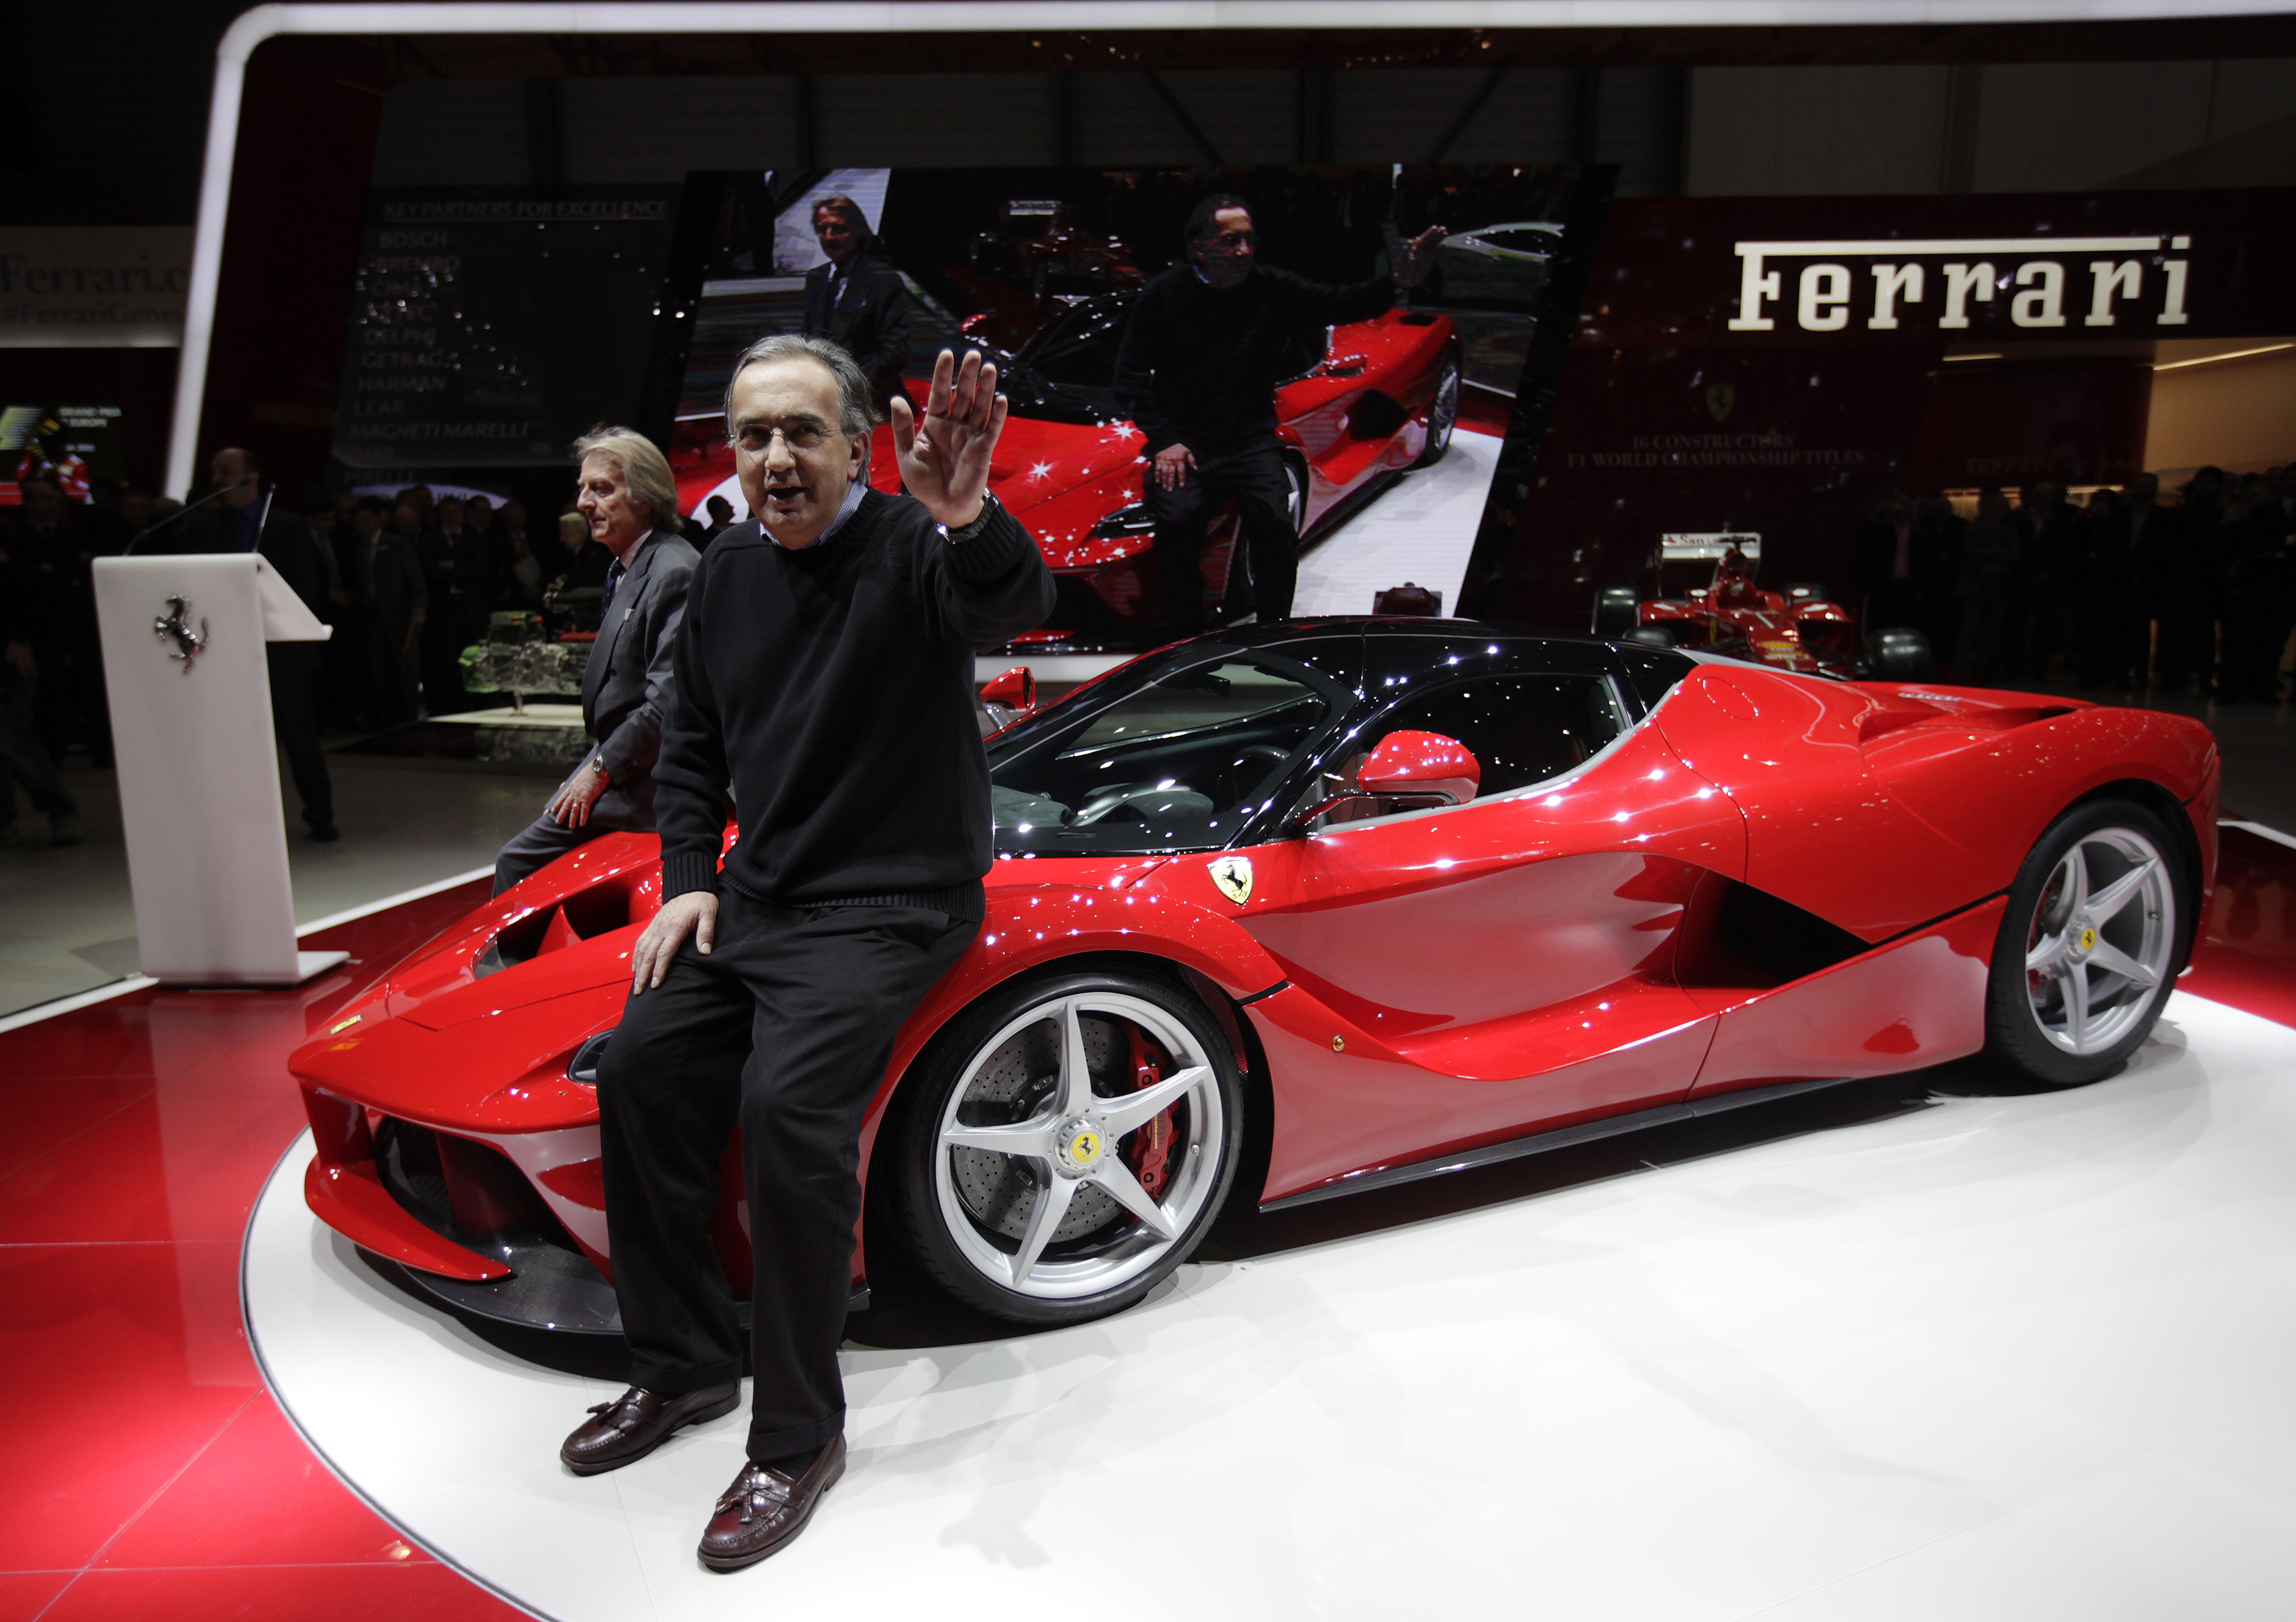 Ferrari's CEO shoots down claims that Tesla's Model S is secretly a supercar (TSLA, RACE)